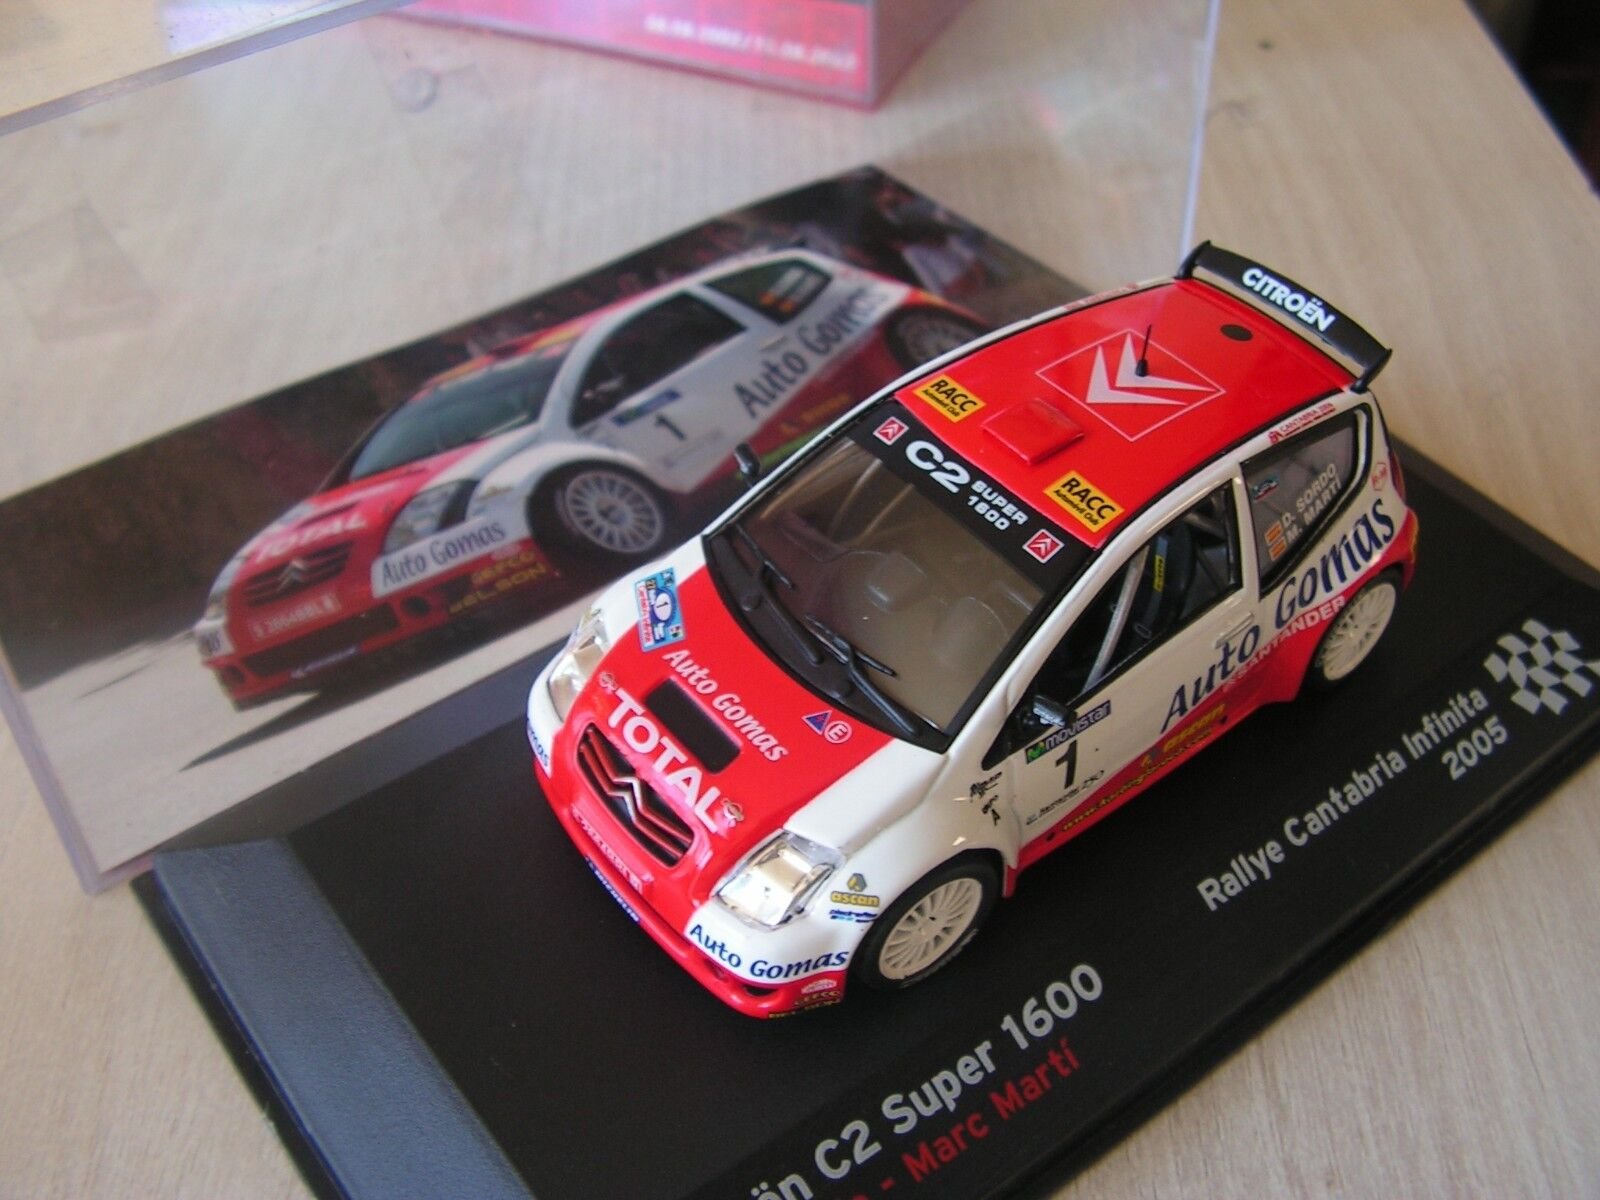 Voiture  1  43 eme  citroen c 2 super 1600        rally  2005     serie 14